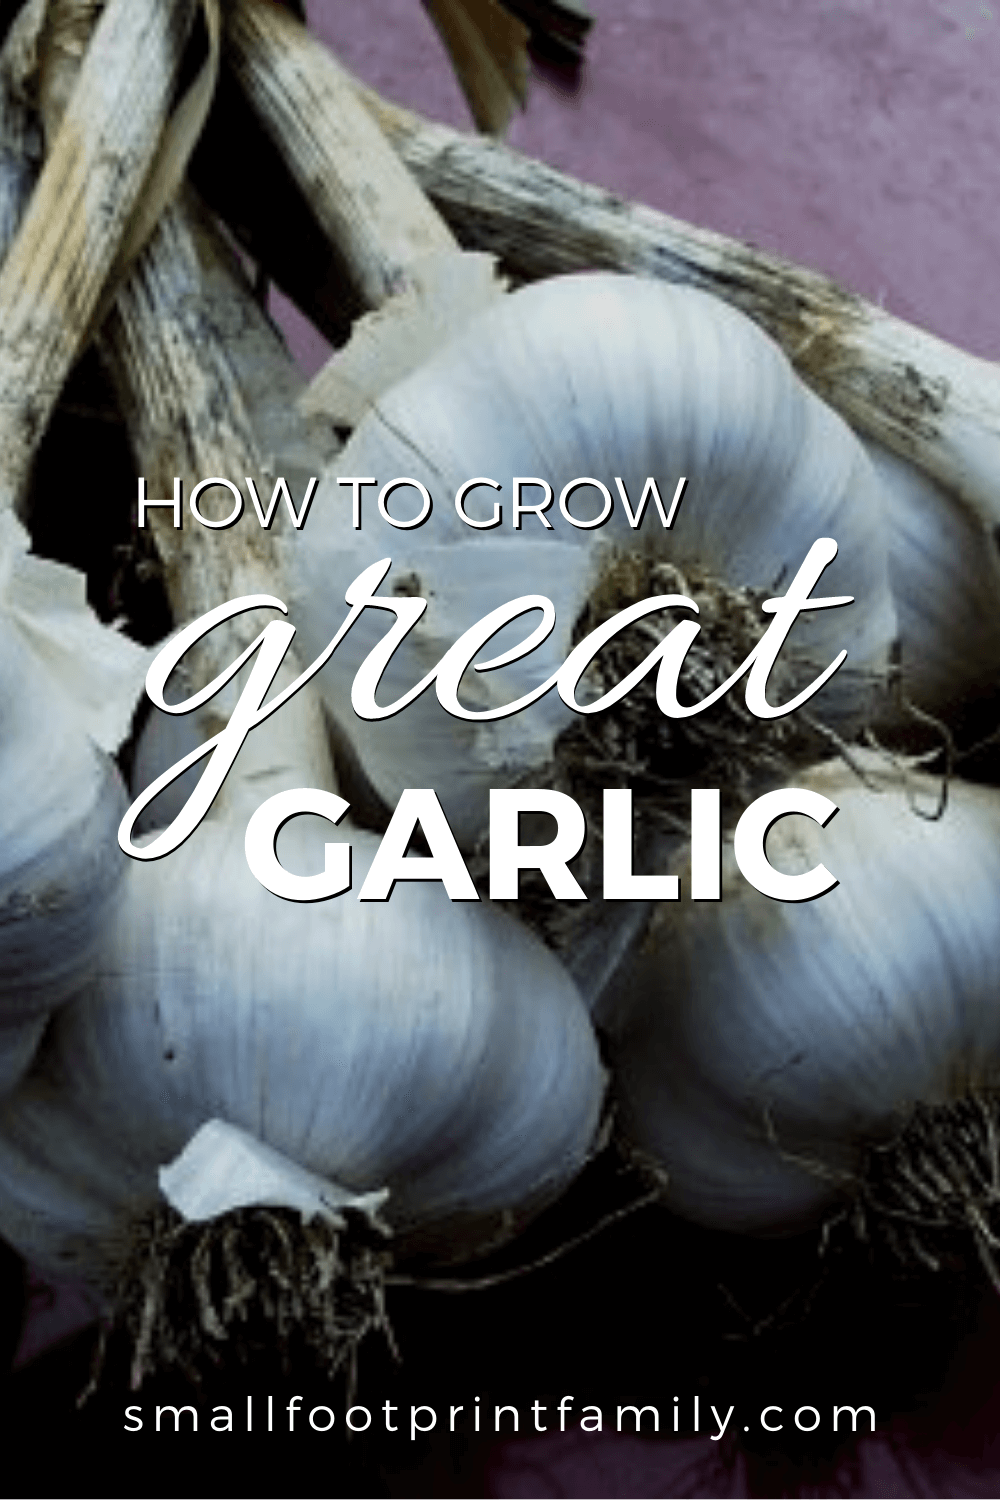 Fall is the time to plant garlic. Garlic is easy to plant and care for, and it takes up very little space in the garden. Click here to learn how to grow great garlic, from planting to harvest...